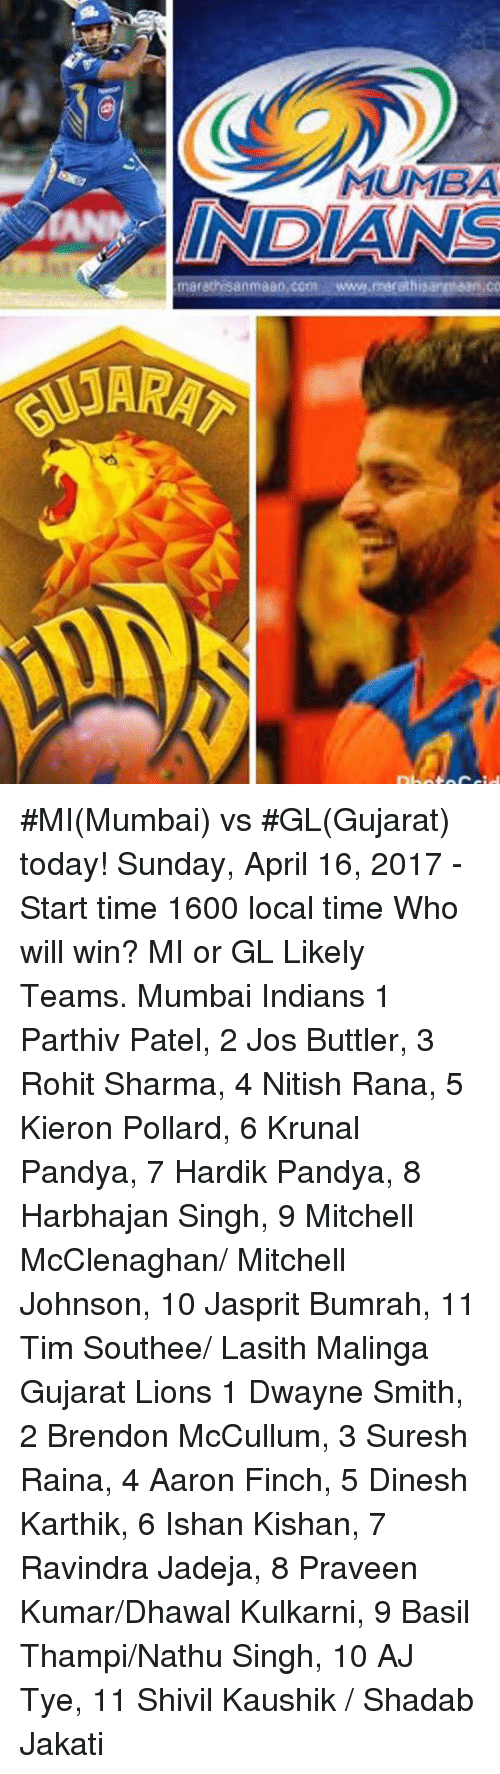 Memes, Lions, and Time: MUMBA  INDIANS  marathisanmaao, cont www.merathisanmaan CO #MI(Mumbai) vs #GL(Gujarat) today!  Sunday, April 16, 2017 - Start time 1600 local time Who will win? MI or GL  Likely Teams.  Mumbai Indians 1 Parthiv Patel, 2 Jos Buttler, 3 Rohit Sharma, 4 Nitish Rana, 5 Kieron Pollard, 6 Krunal Pandya, 7 Hardik Pandya, 8 Harbhajan Singh, 9 Mitchell McClenaghan/ Mitchell Johnson, 10 Jasprit Bumrah, 11 Tim Southee/ Lasith Malinga  Gujarat Lions 1 Dwayne Smith, 2 Brendon McCullum, 3 Suresh Raina, 4 Aaron Finch, 5 Dinesh Karthik, 6 Ishan Kishan, 7 Ravindra Jadeja, 8 Praveen Kumar/Dhawal Kulkarni, 9 Basil Thampi/Nathu Singh, 10 AJ Tye, 11 Shivil Kaushik / Shadab Jakati